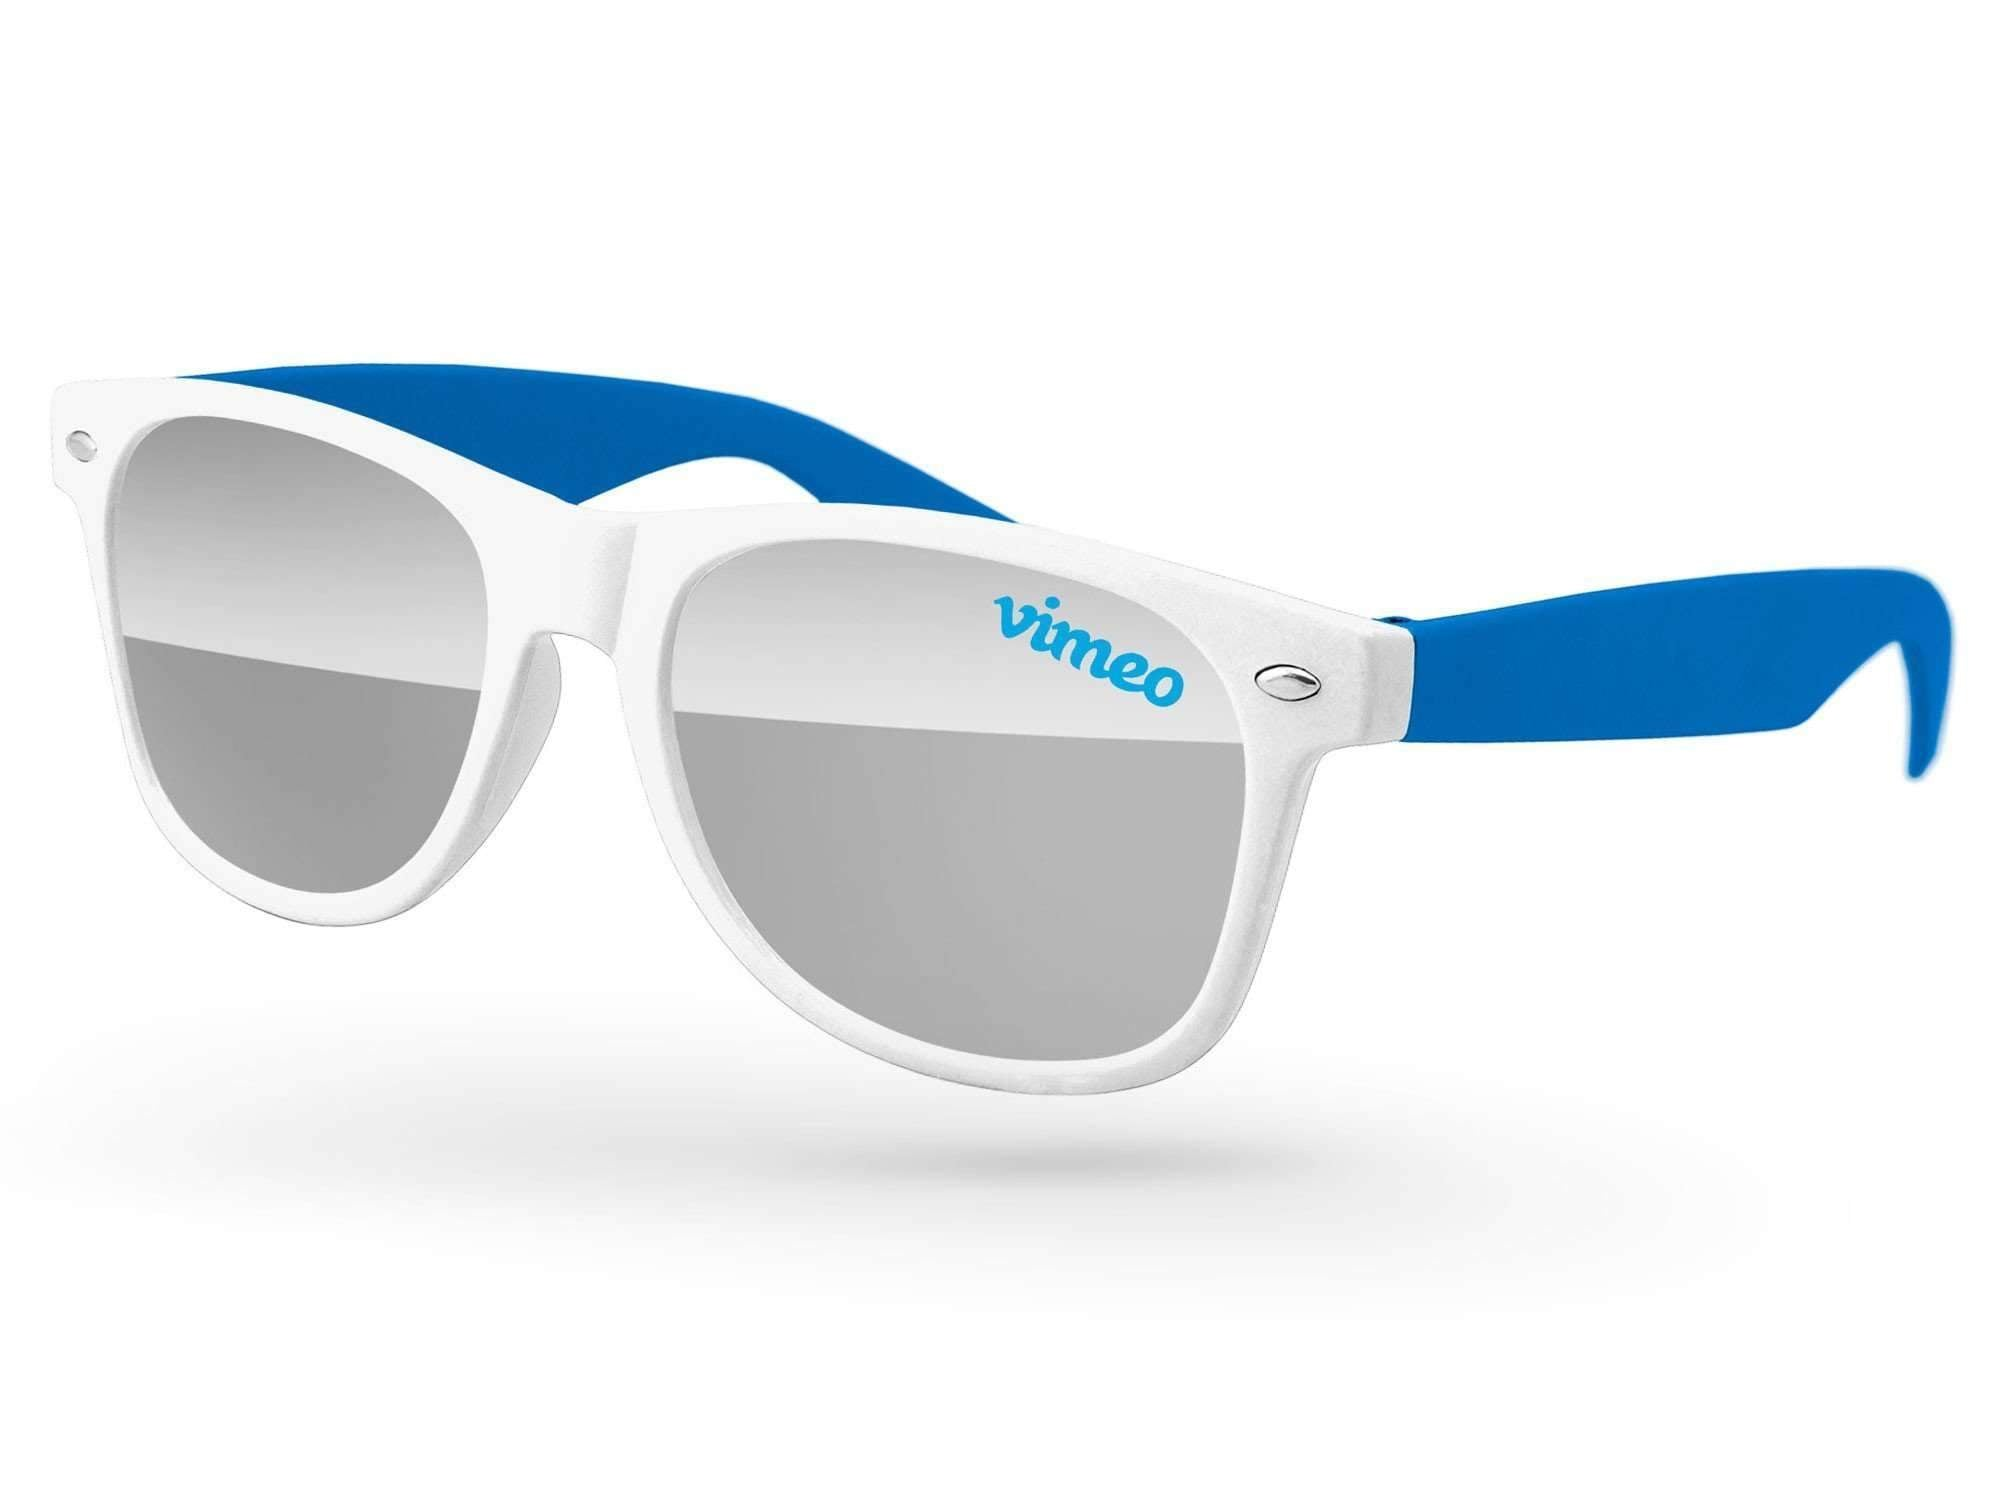 RM502 - 2-tone Retro Mirror Promotional Sunglasses w/ 1-color lens imprint